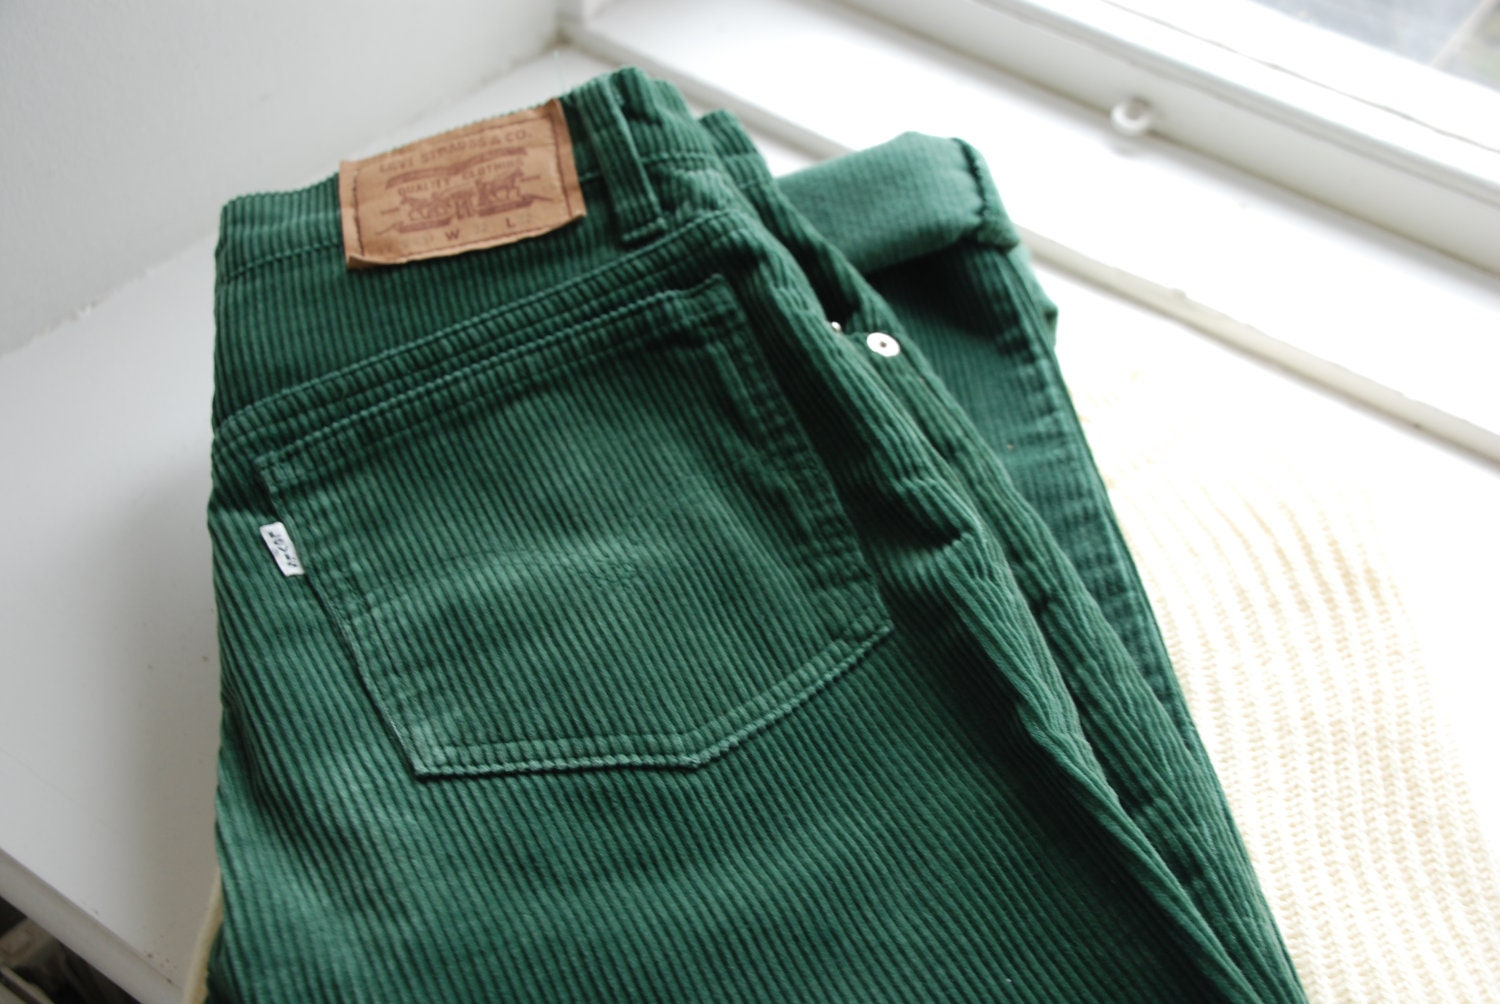 Lastest Levi Strauss &amp Co Canada Inc Manufactures And Markets Apparel For Men, Women, And Kids Under Levis Brand It Offers Jeans, Pants, Corduroy, Sweaters And Sweatshirts, Shirts, Tshirts And Graphics